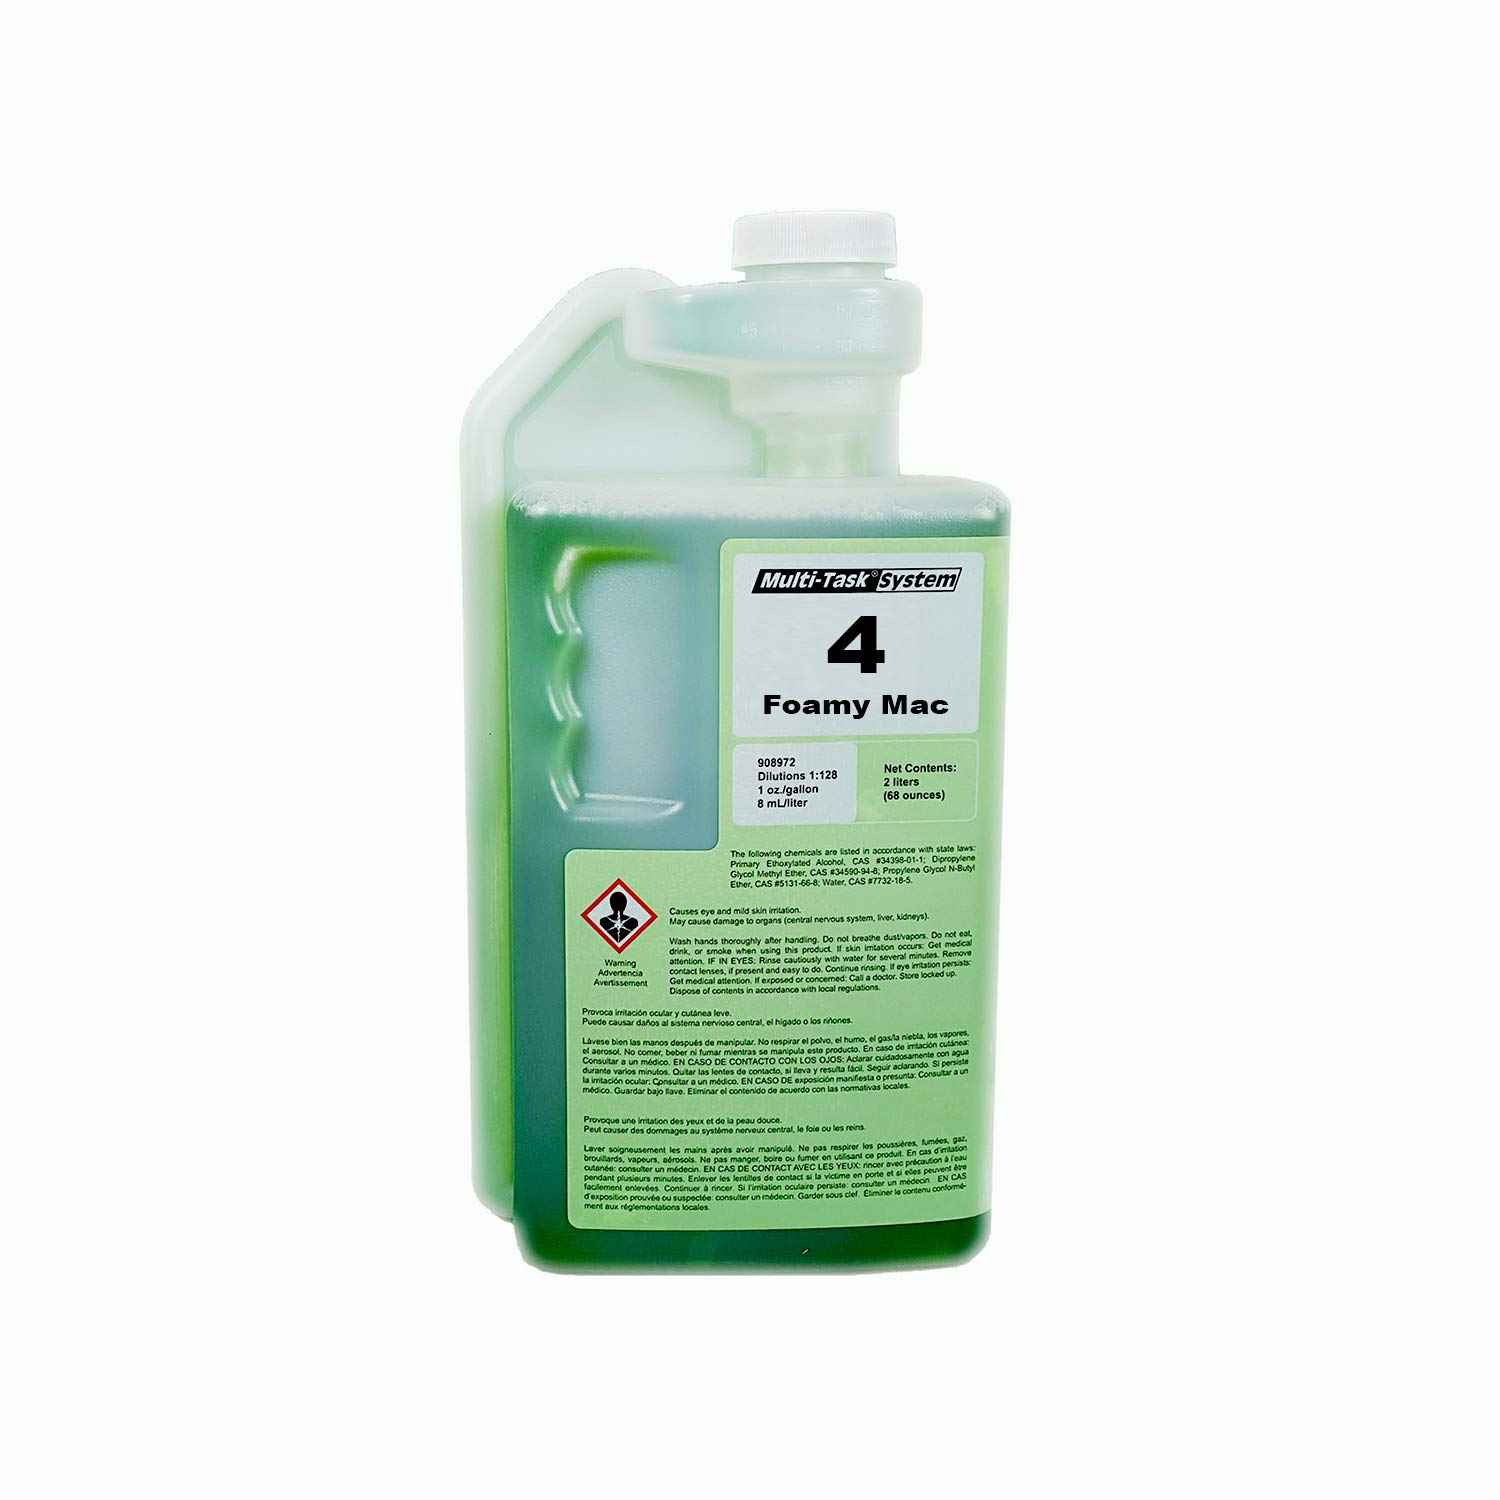 Multi-Clean 908742 4 Foamy MAC Restroom Basin Tub and Tile Cleaner Concentrate, Green Seal Certified, Squeeze and Pour Dilution Control (Pack of 4)